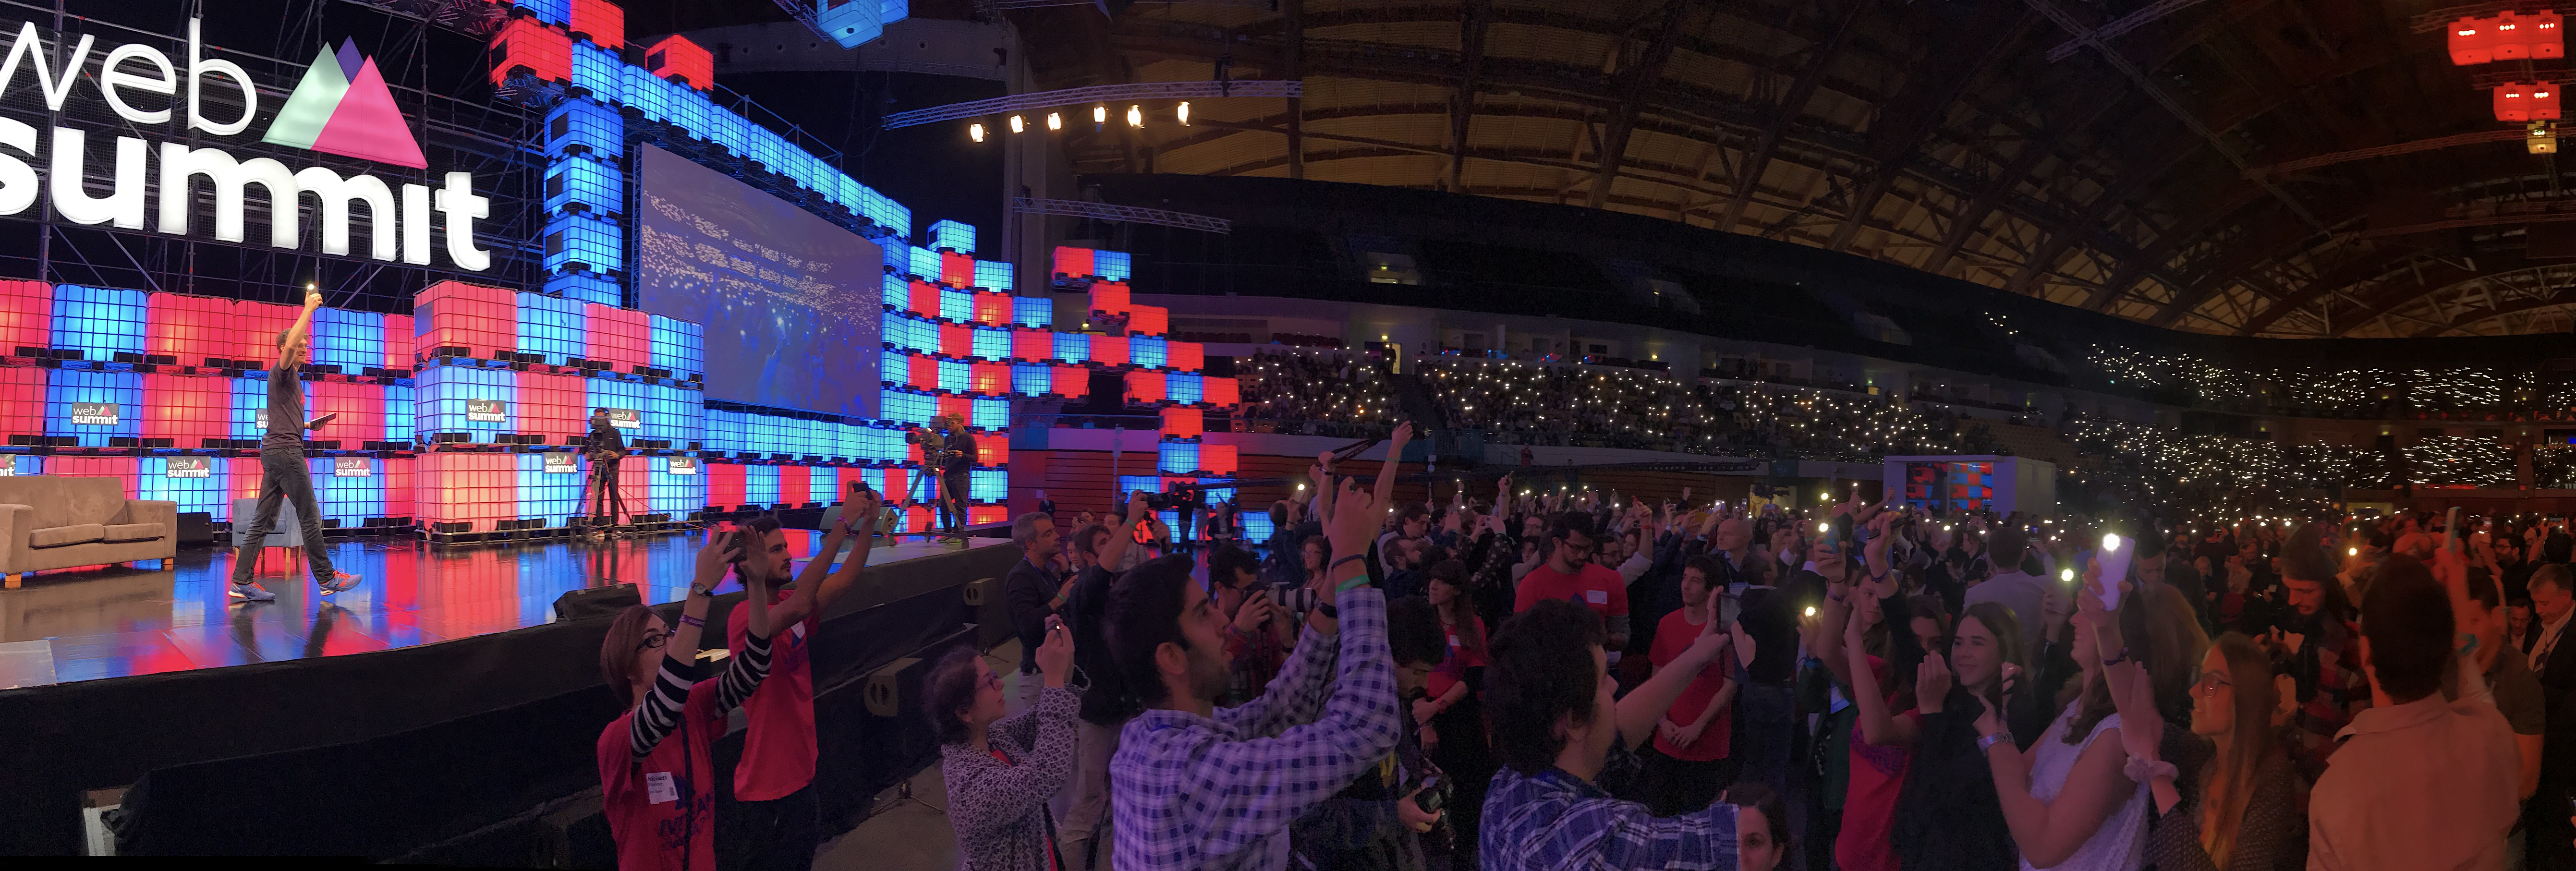 websummit-2016-lisbon-day2_featured-panoramic